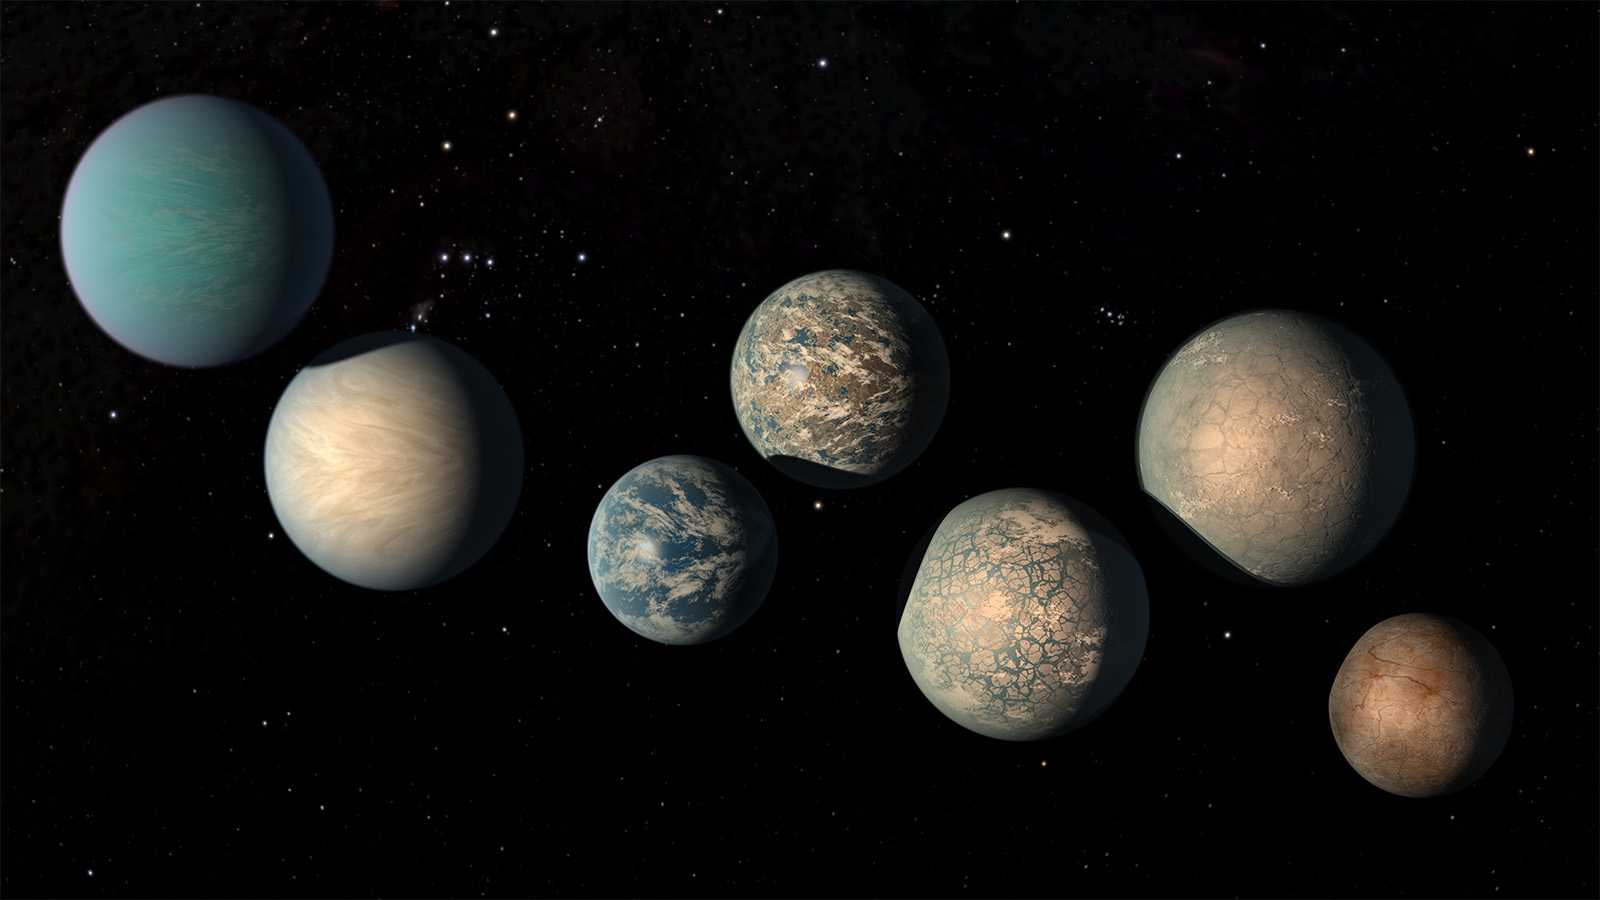 Largest Batch Of Earth Size Habitable Zone Planets Exoplanet Diagram The Greater Solar System Credit Nasajpl Trappist 1 Beauty Shot This Illustration Shows Seven